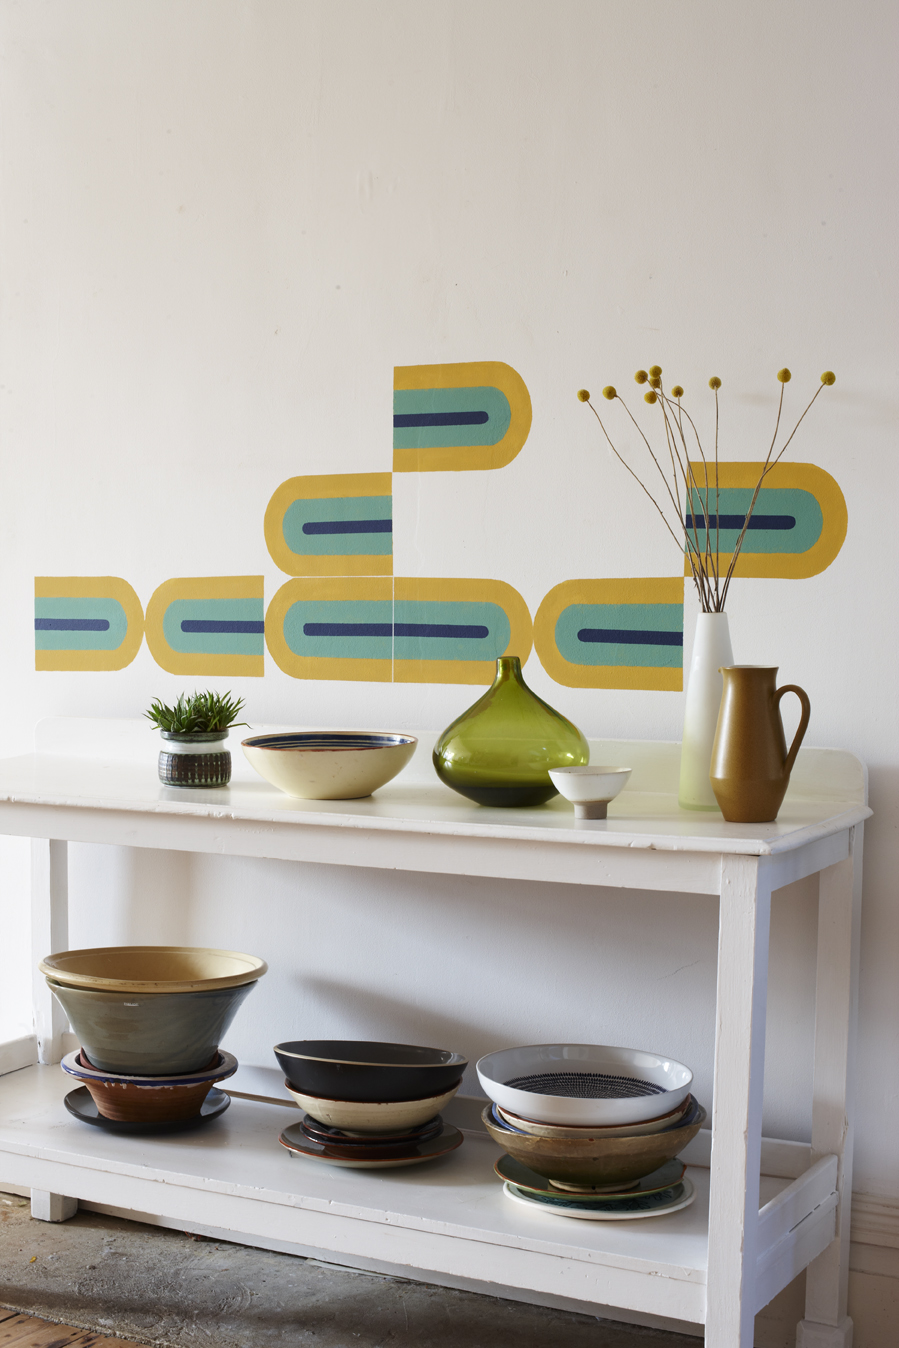 CB945_WALLART_STYLISH_STENCIL_1.jpg